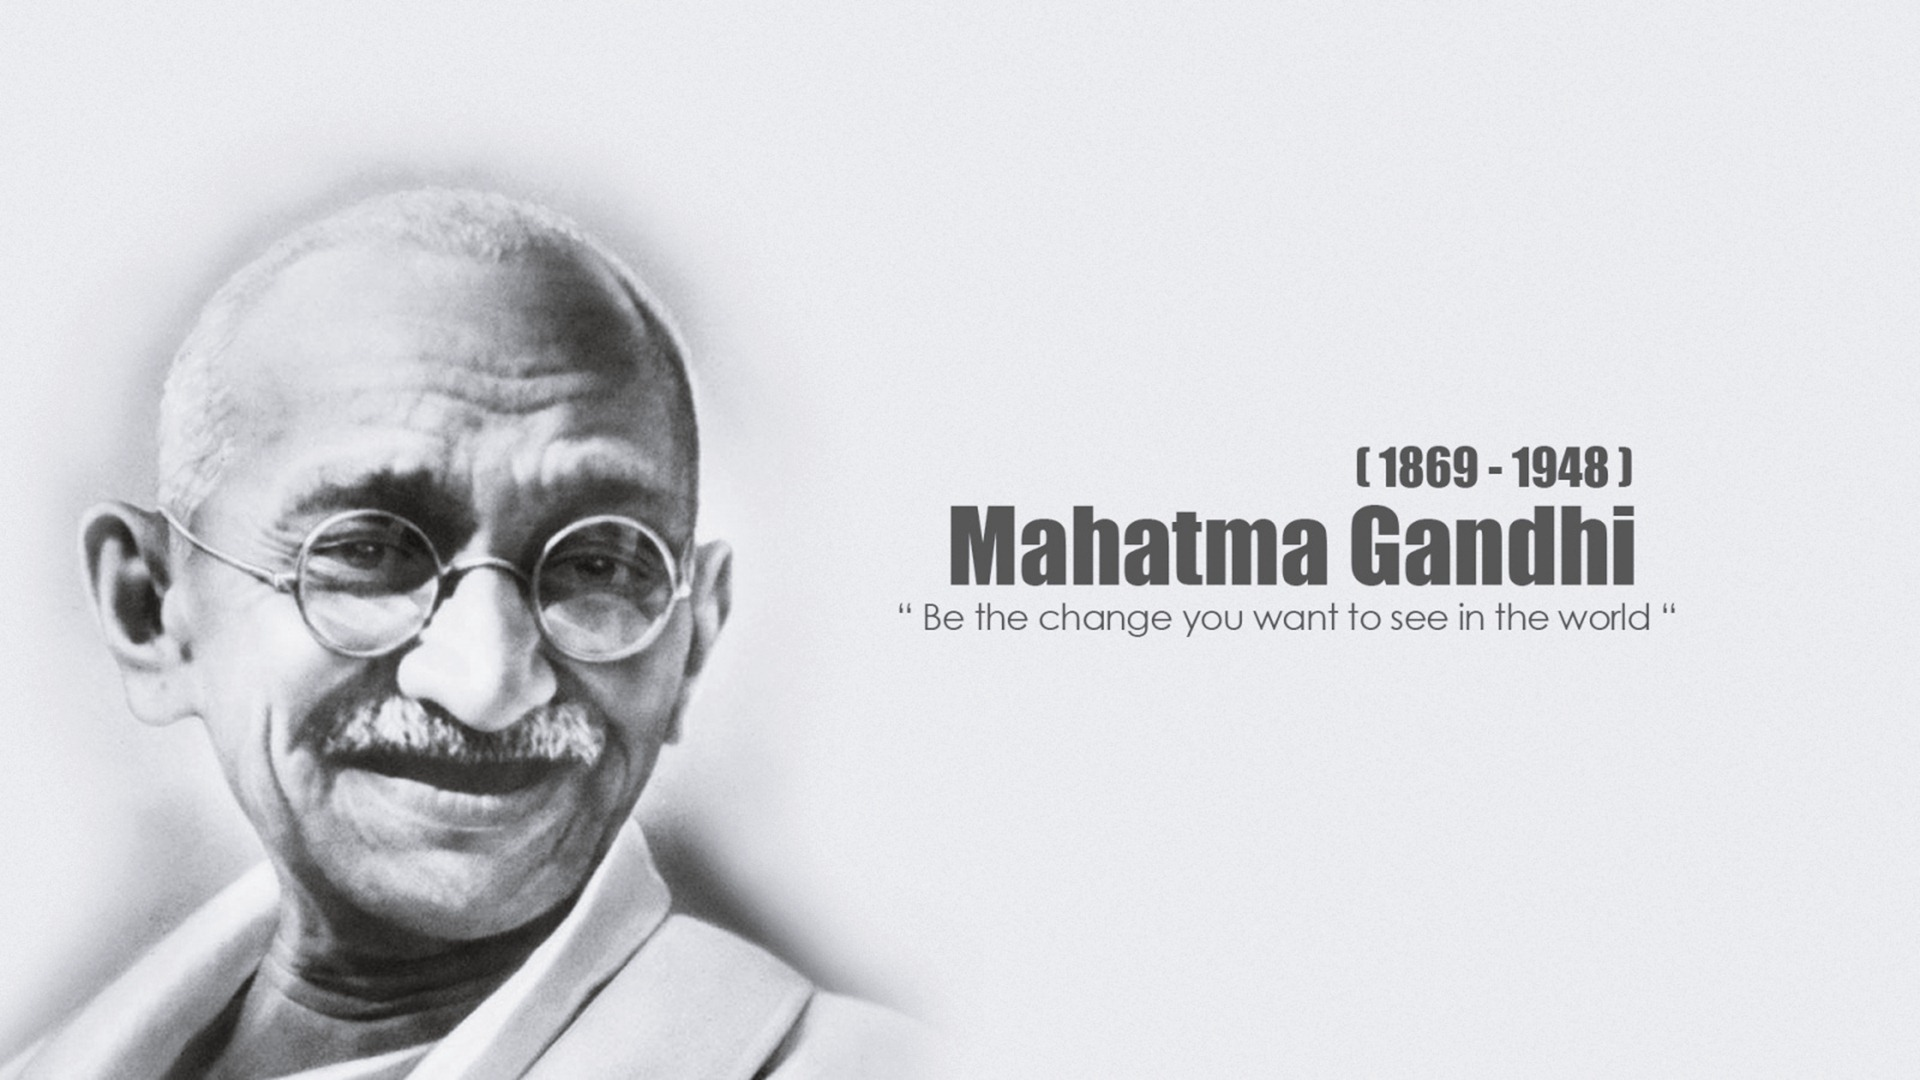 Mahatma Gandhi Quotes HD Wallpaper 05814   Baltana 1920x1080